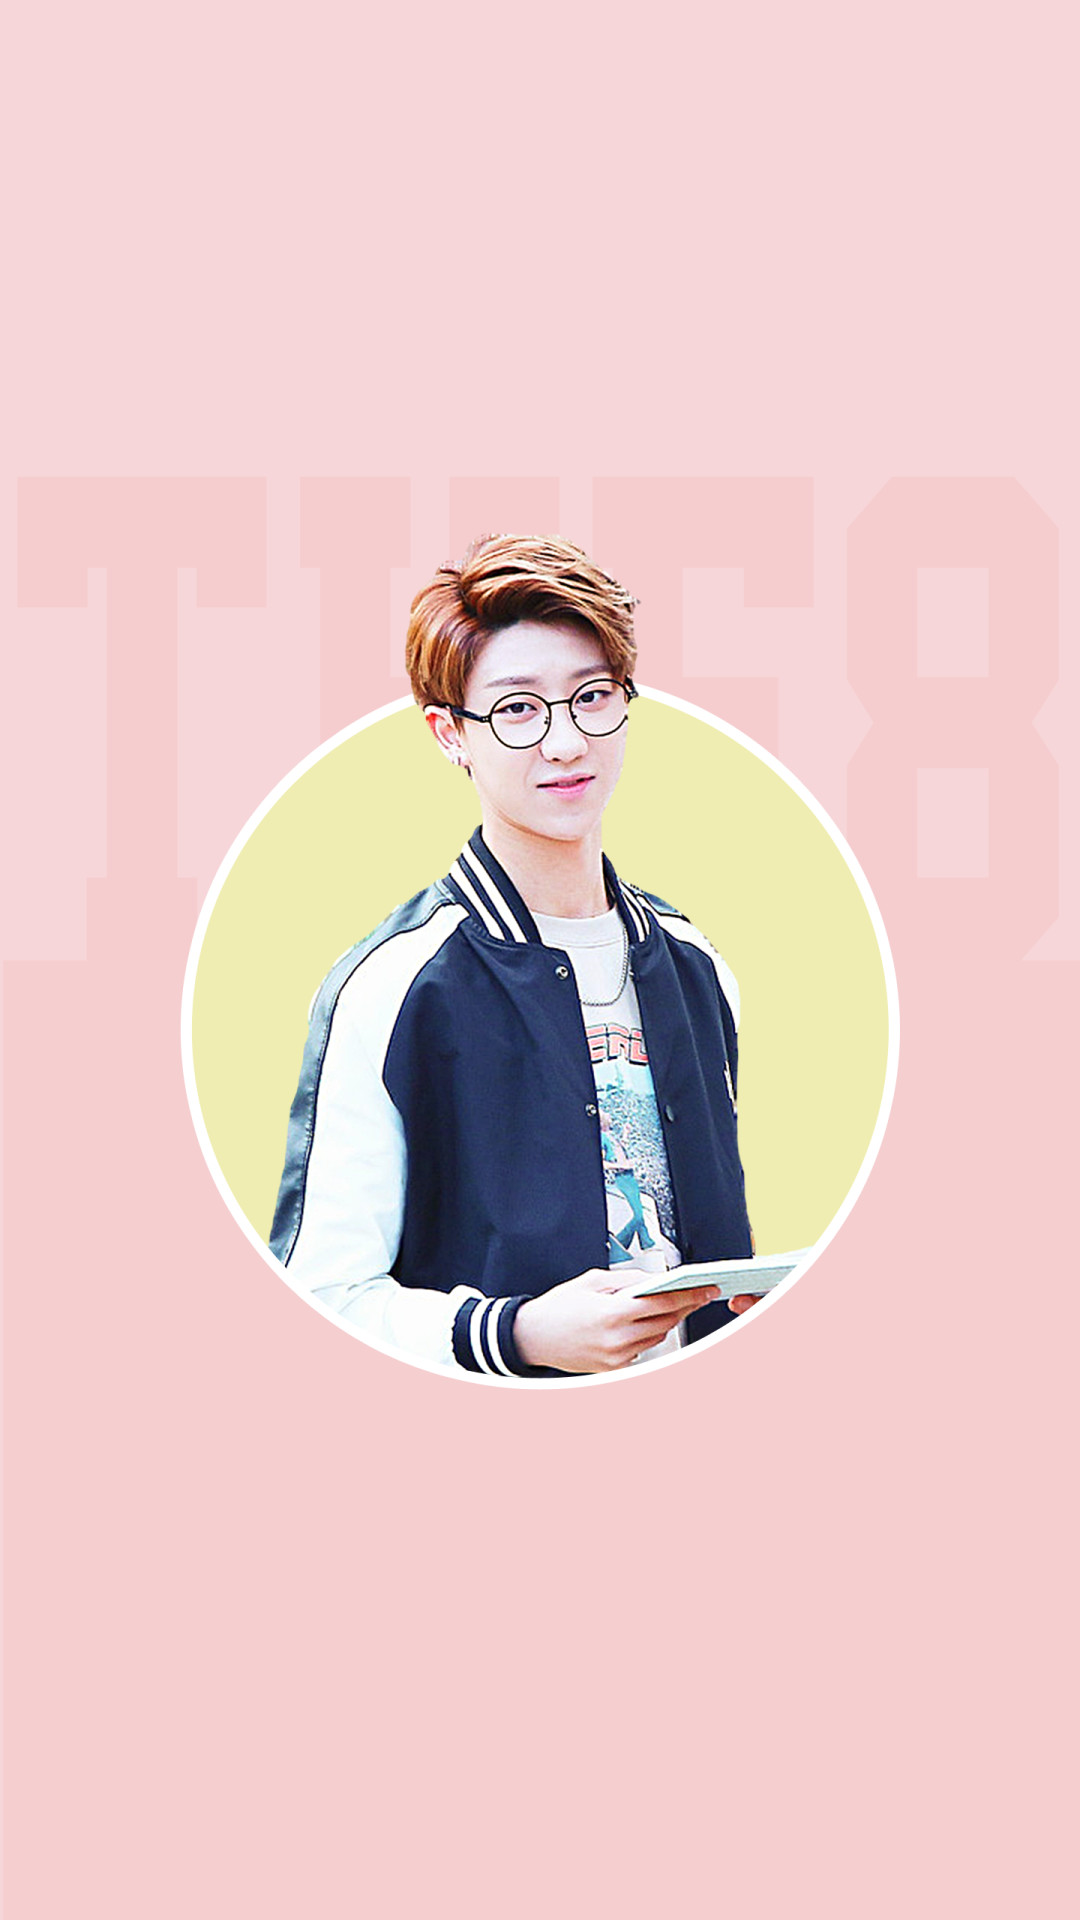 the8 minghao seventeen the8 wallpaper the8 lockscreen minghao wallpaper  minghao lockscreen seventeen wallpaper seventeen lockscreen kpop